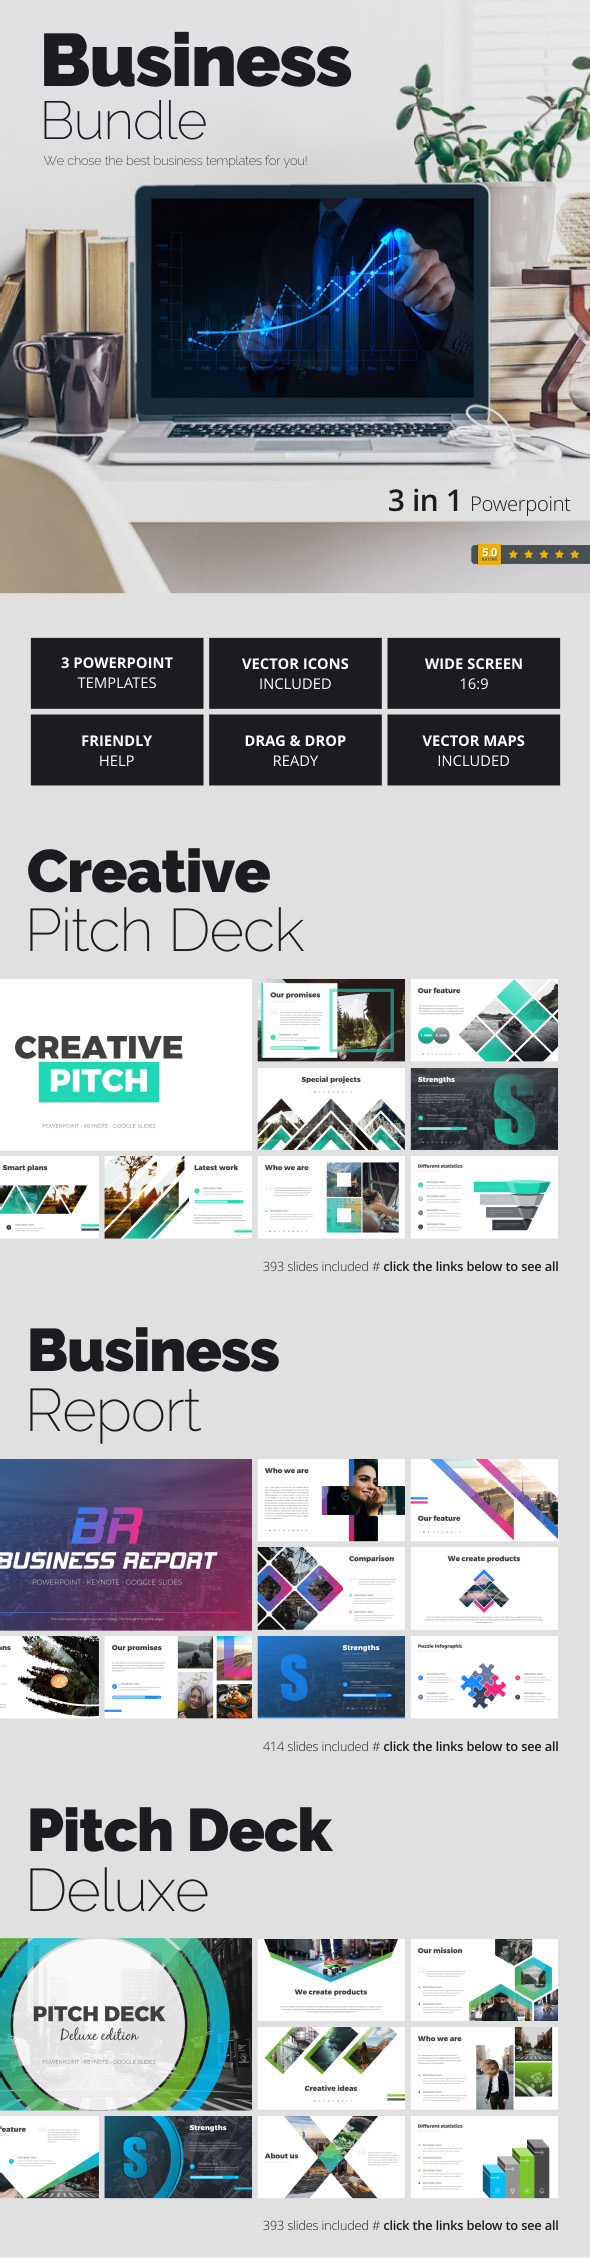 Business Bundle - Business PowerPoint Templates